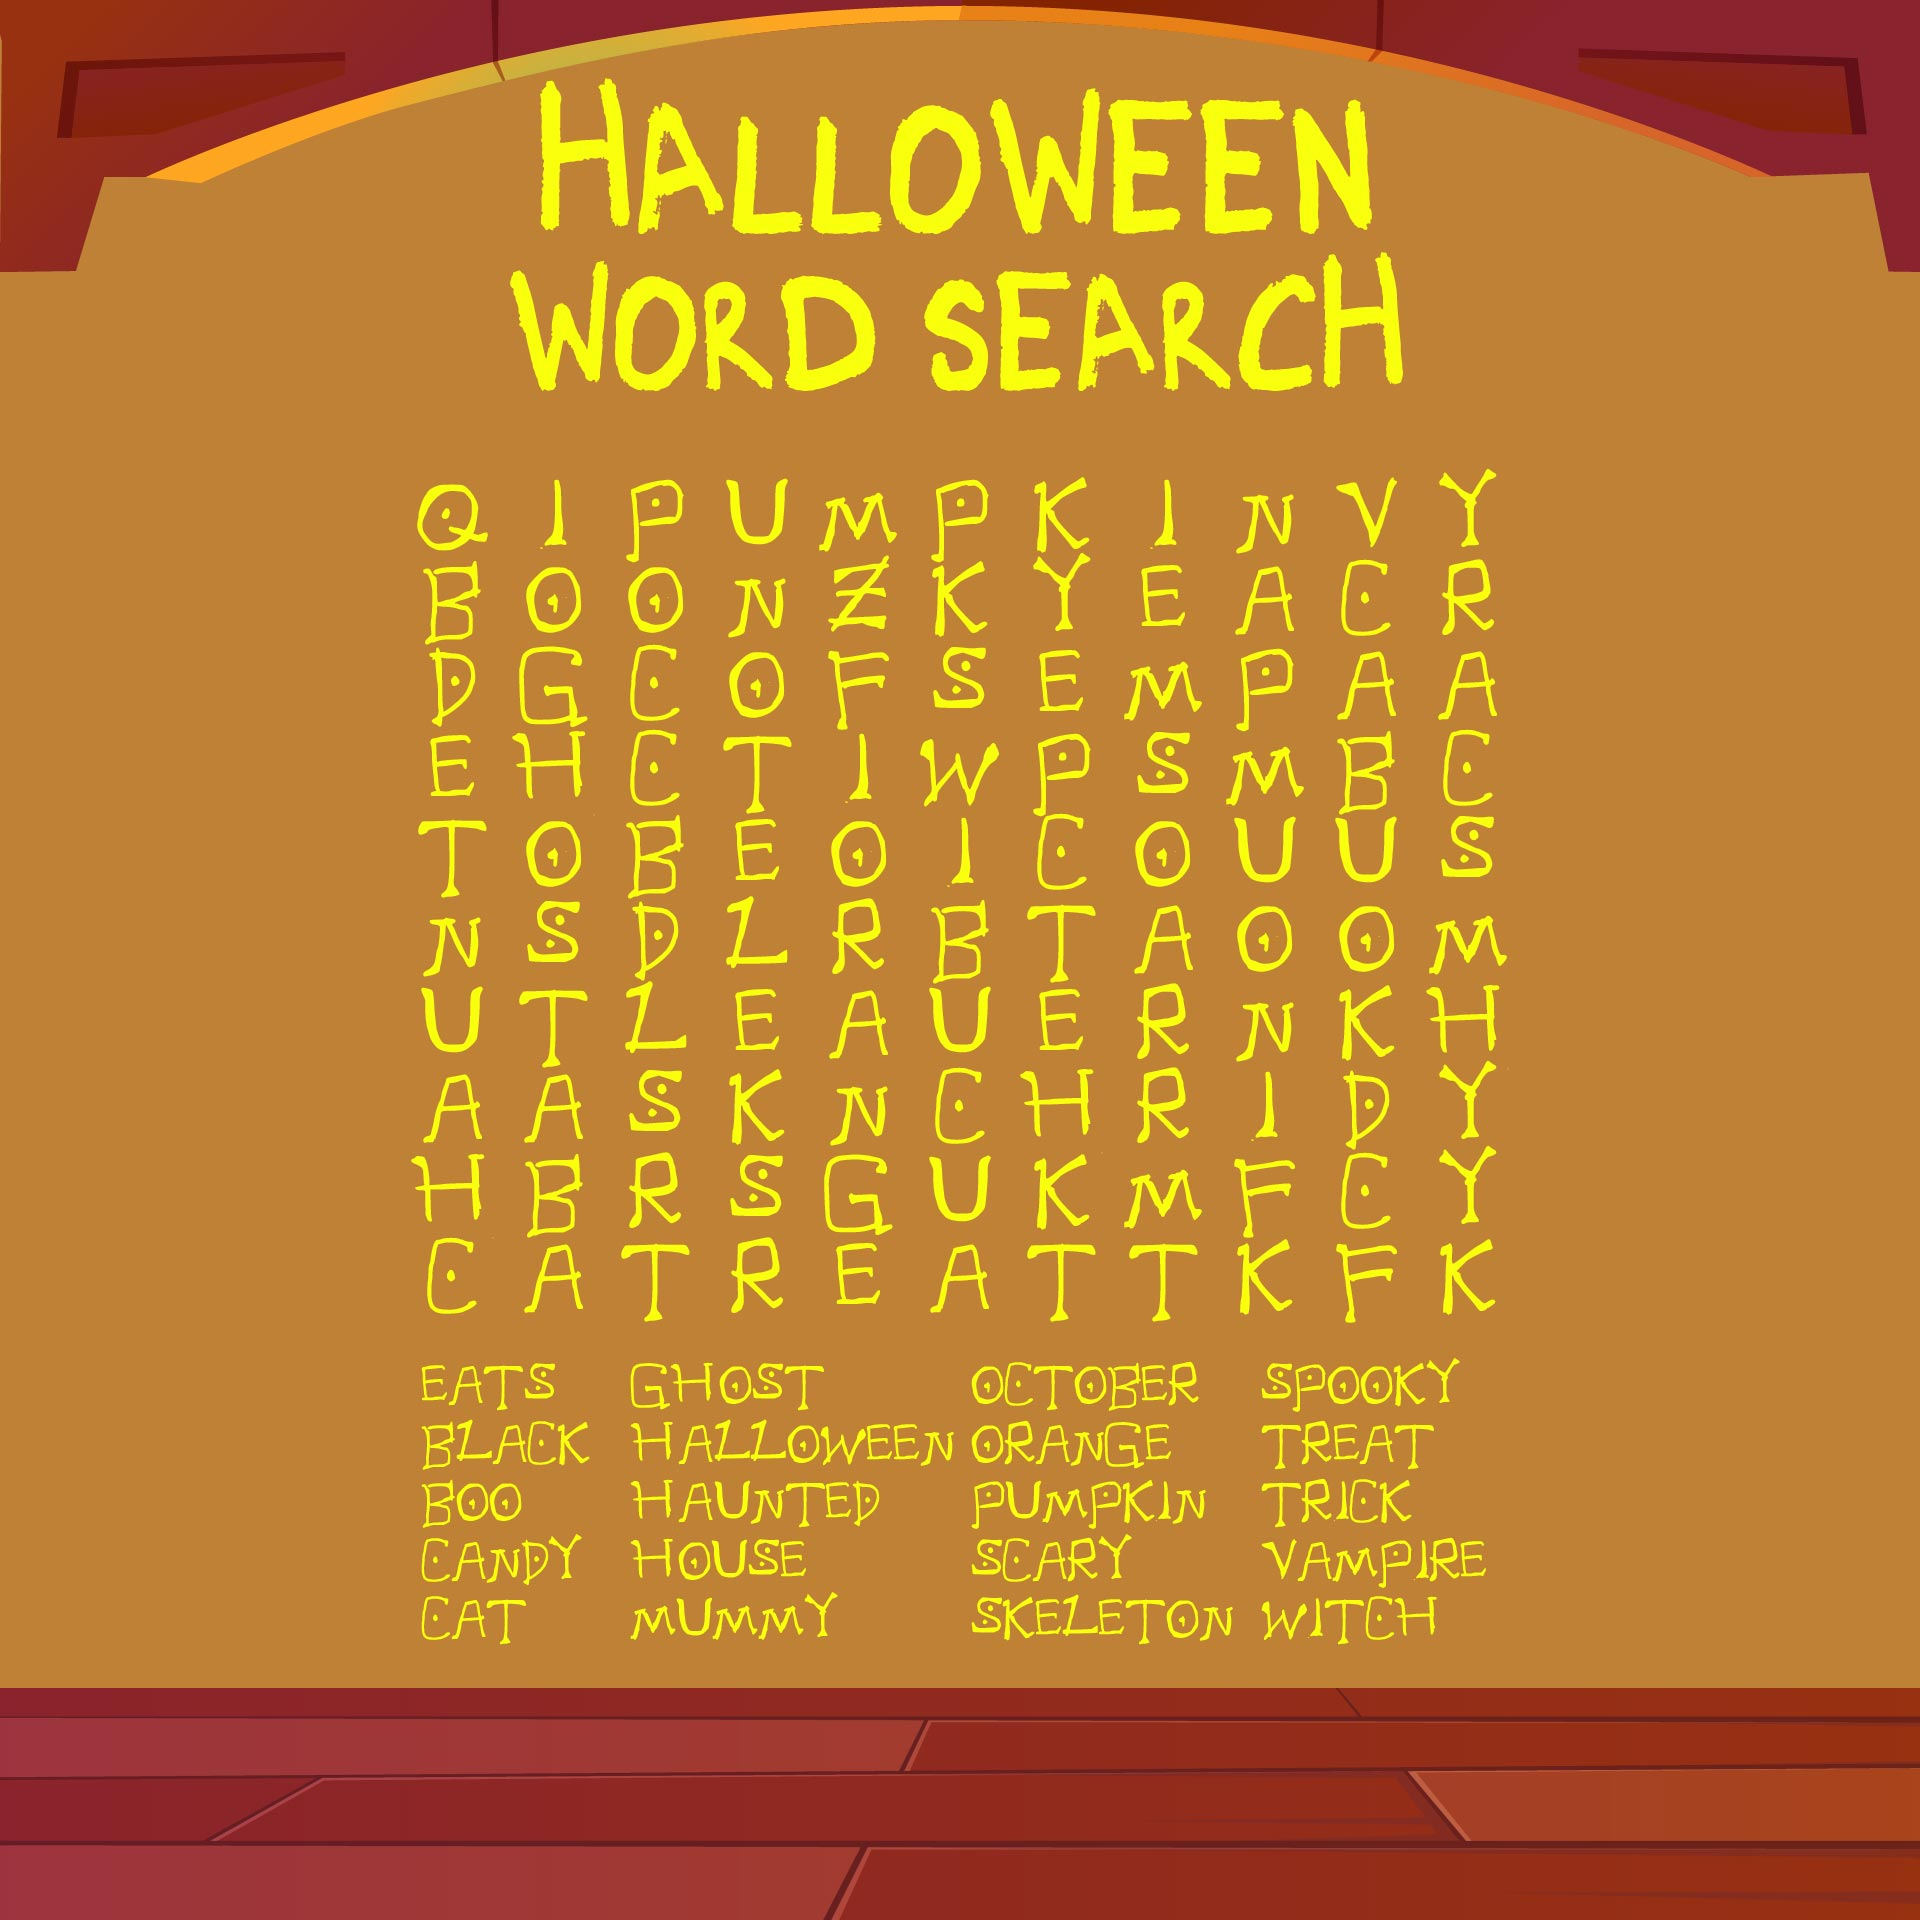 Halloween Word Search Puzzles To Print